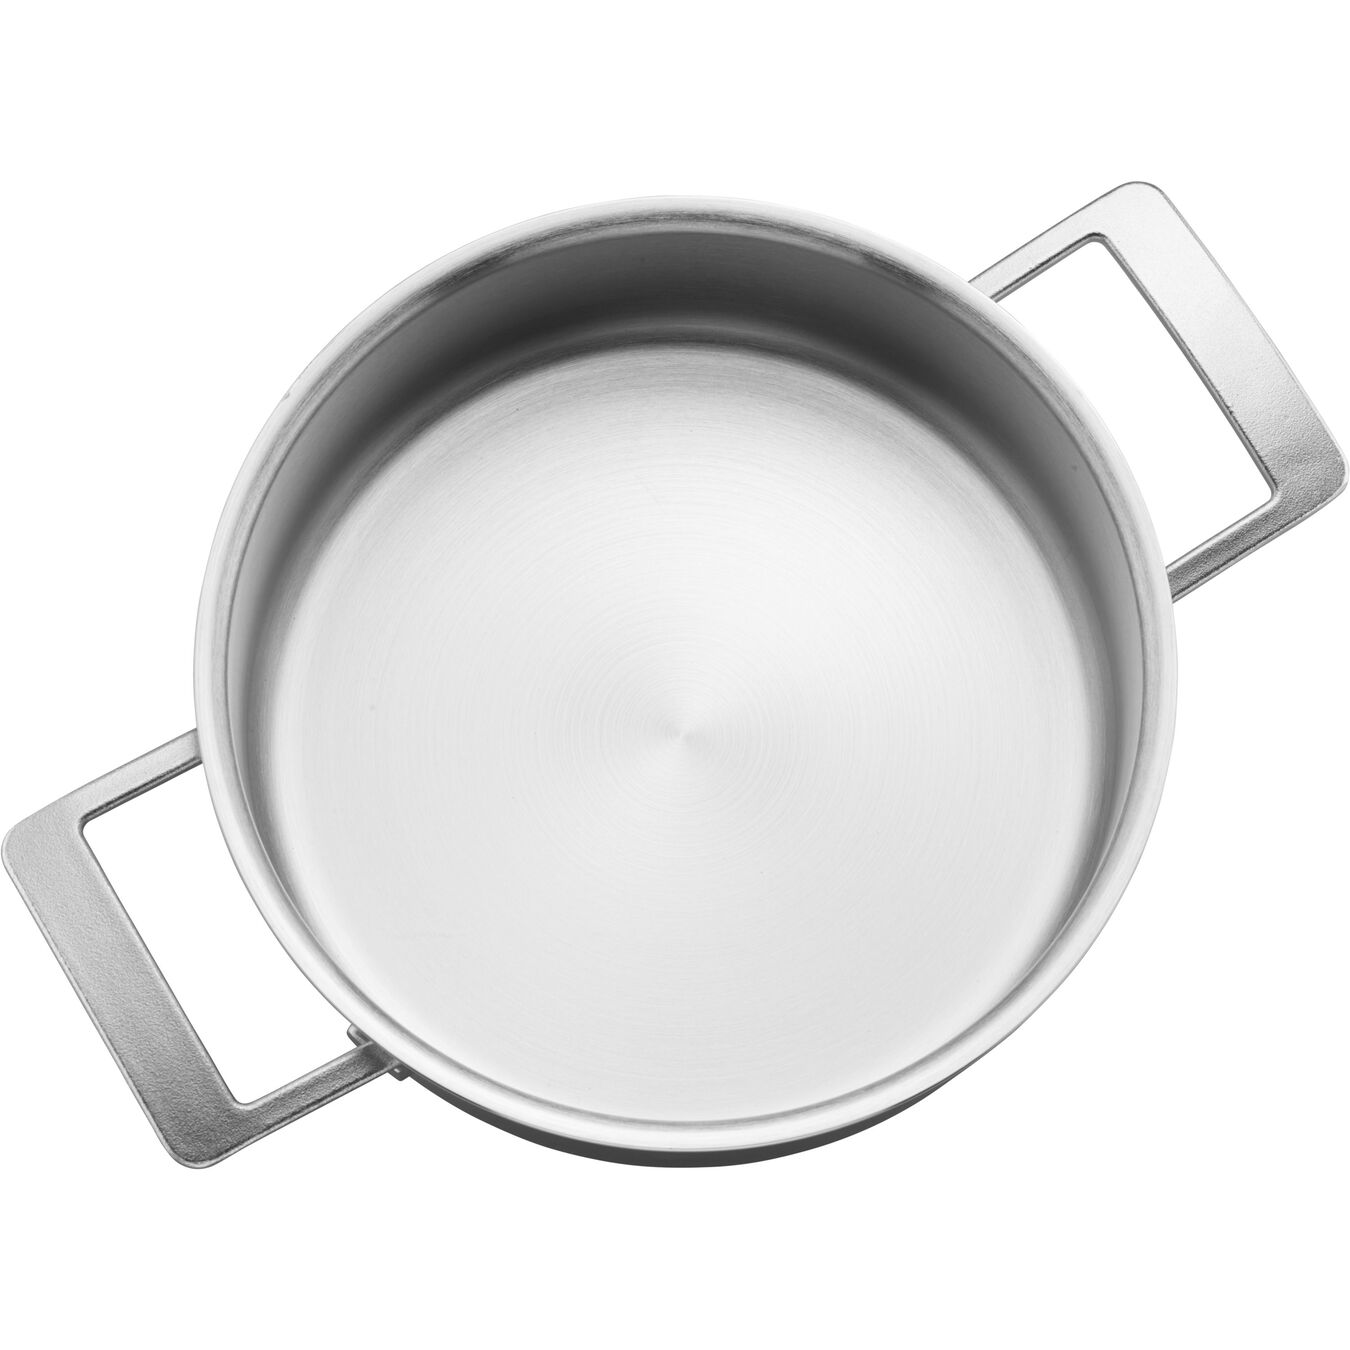 5.25 l 18/10 Stainless Steel Stew pot with lid,,large 3